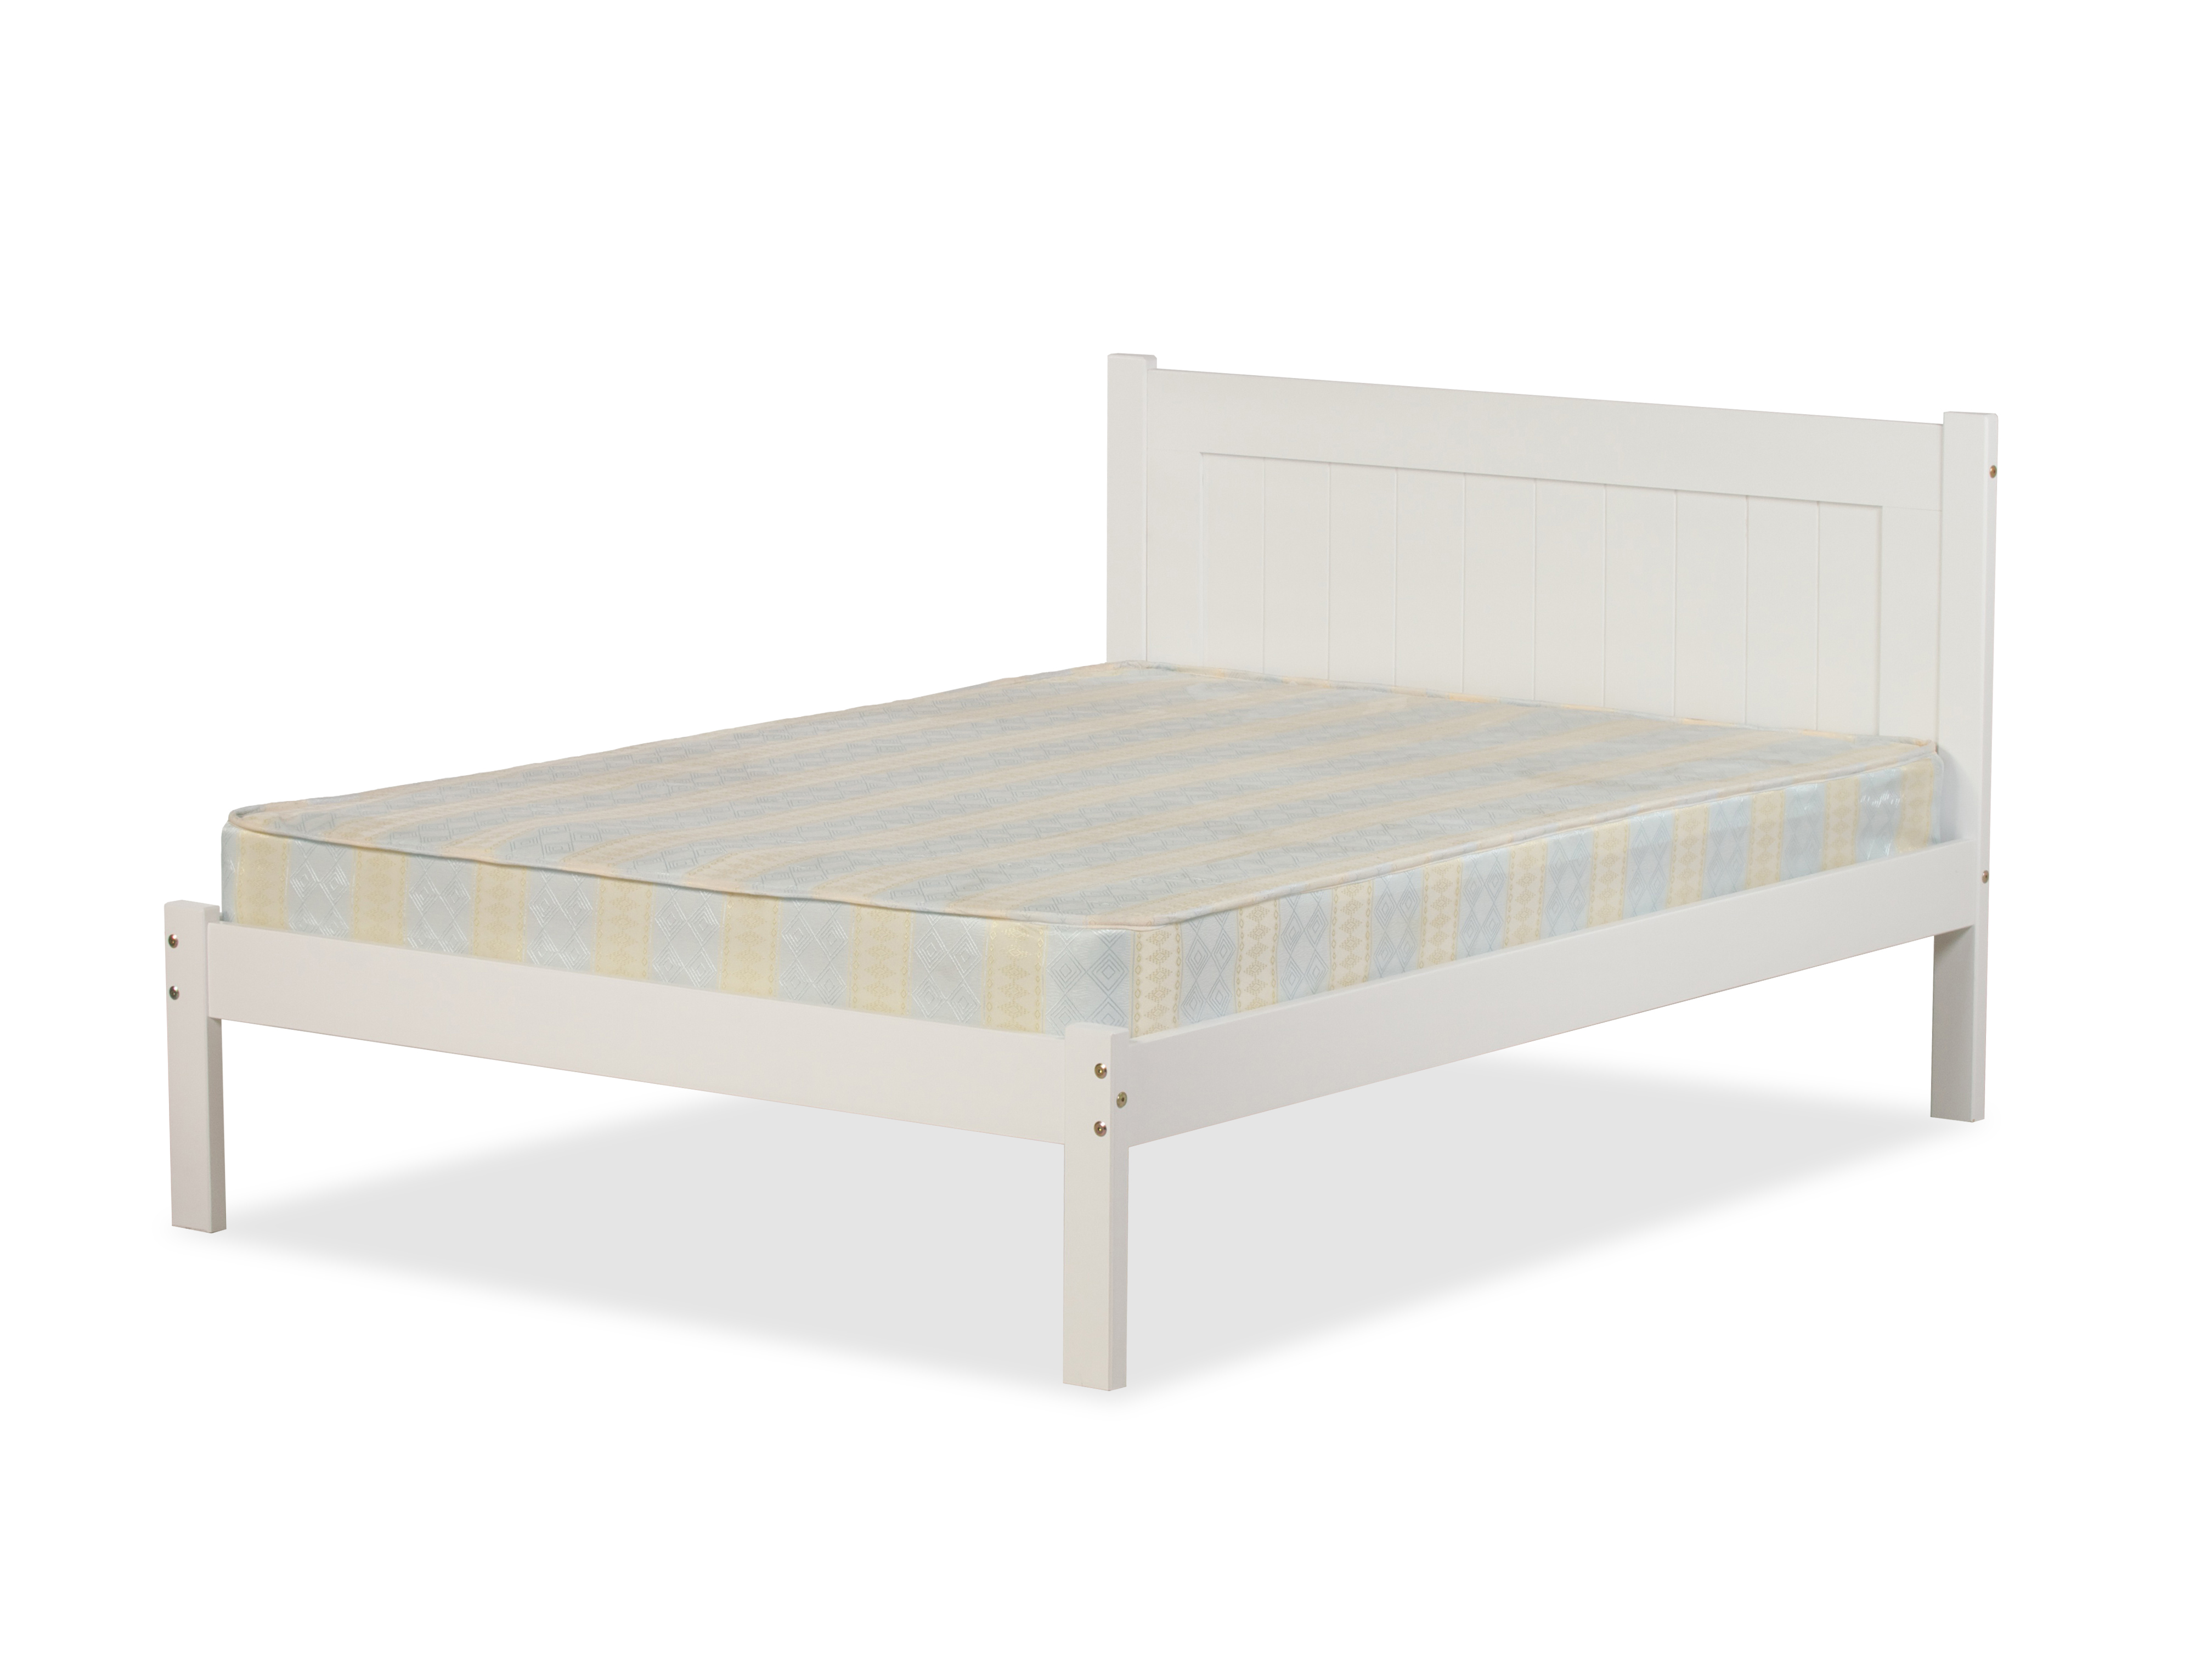 CLIFTON BED IN WHITE PINE